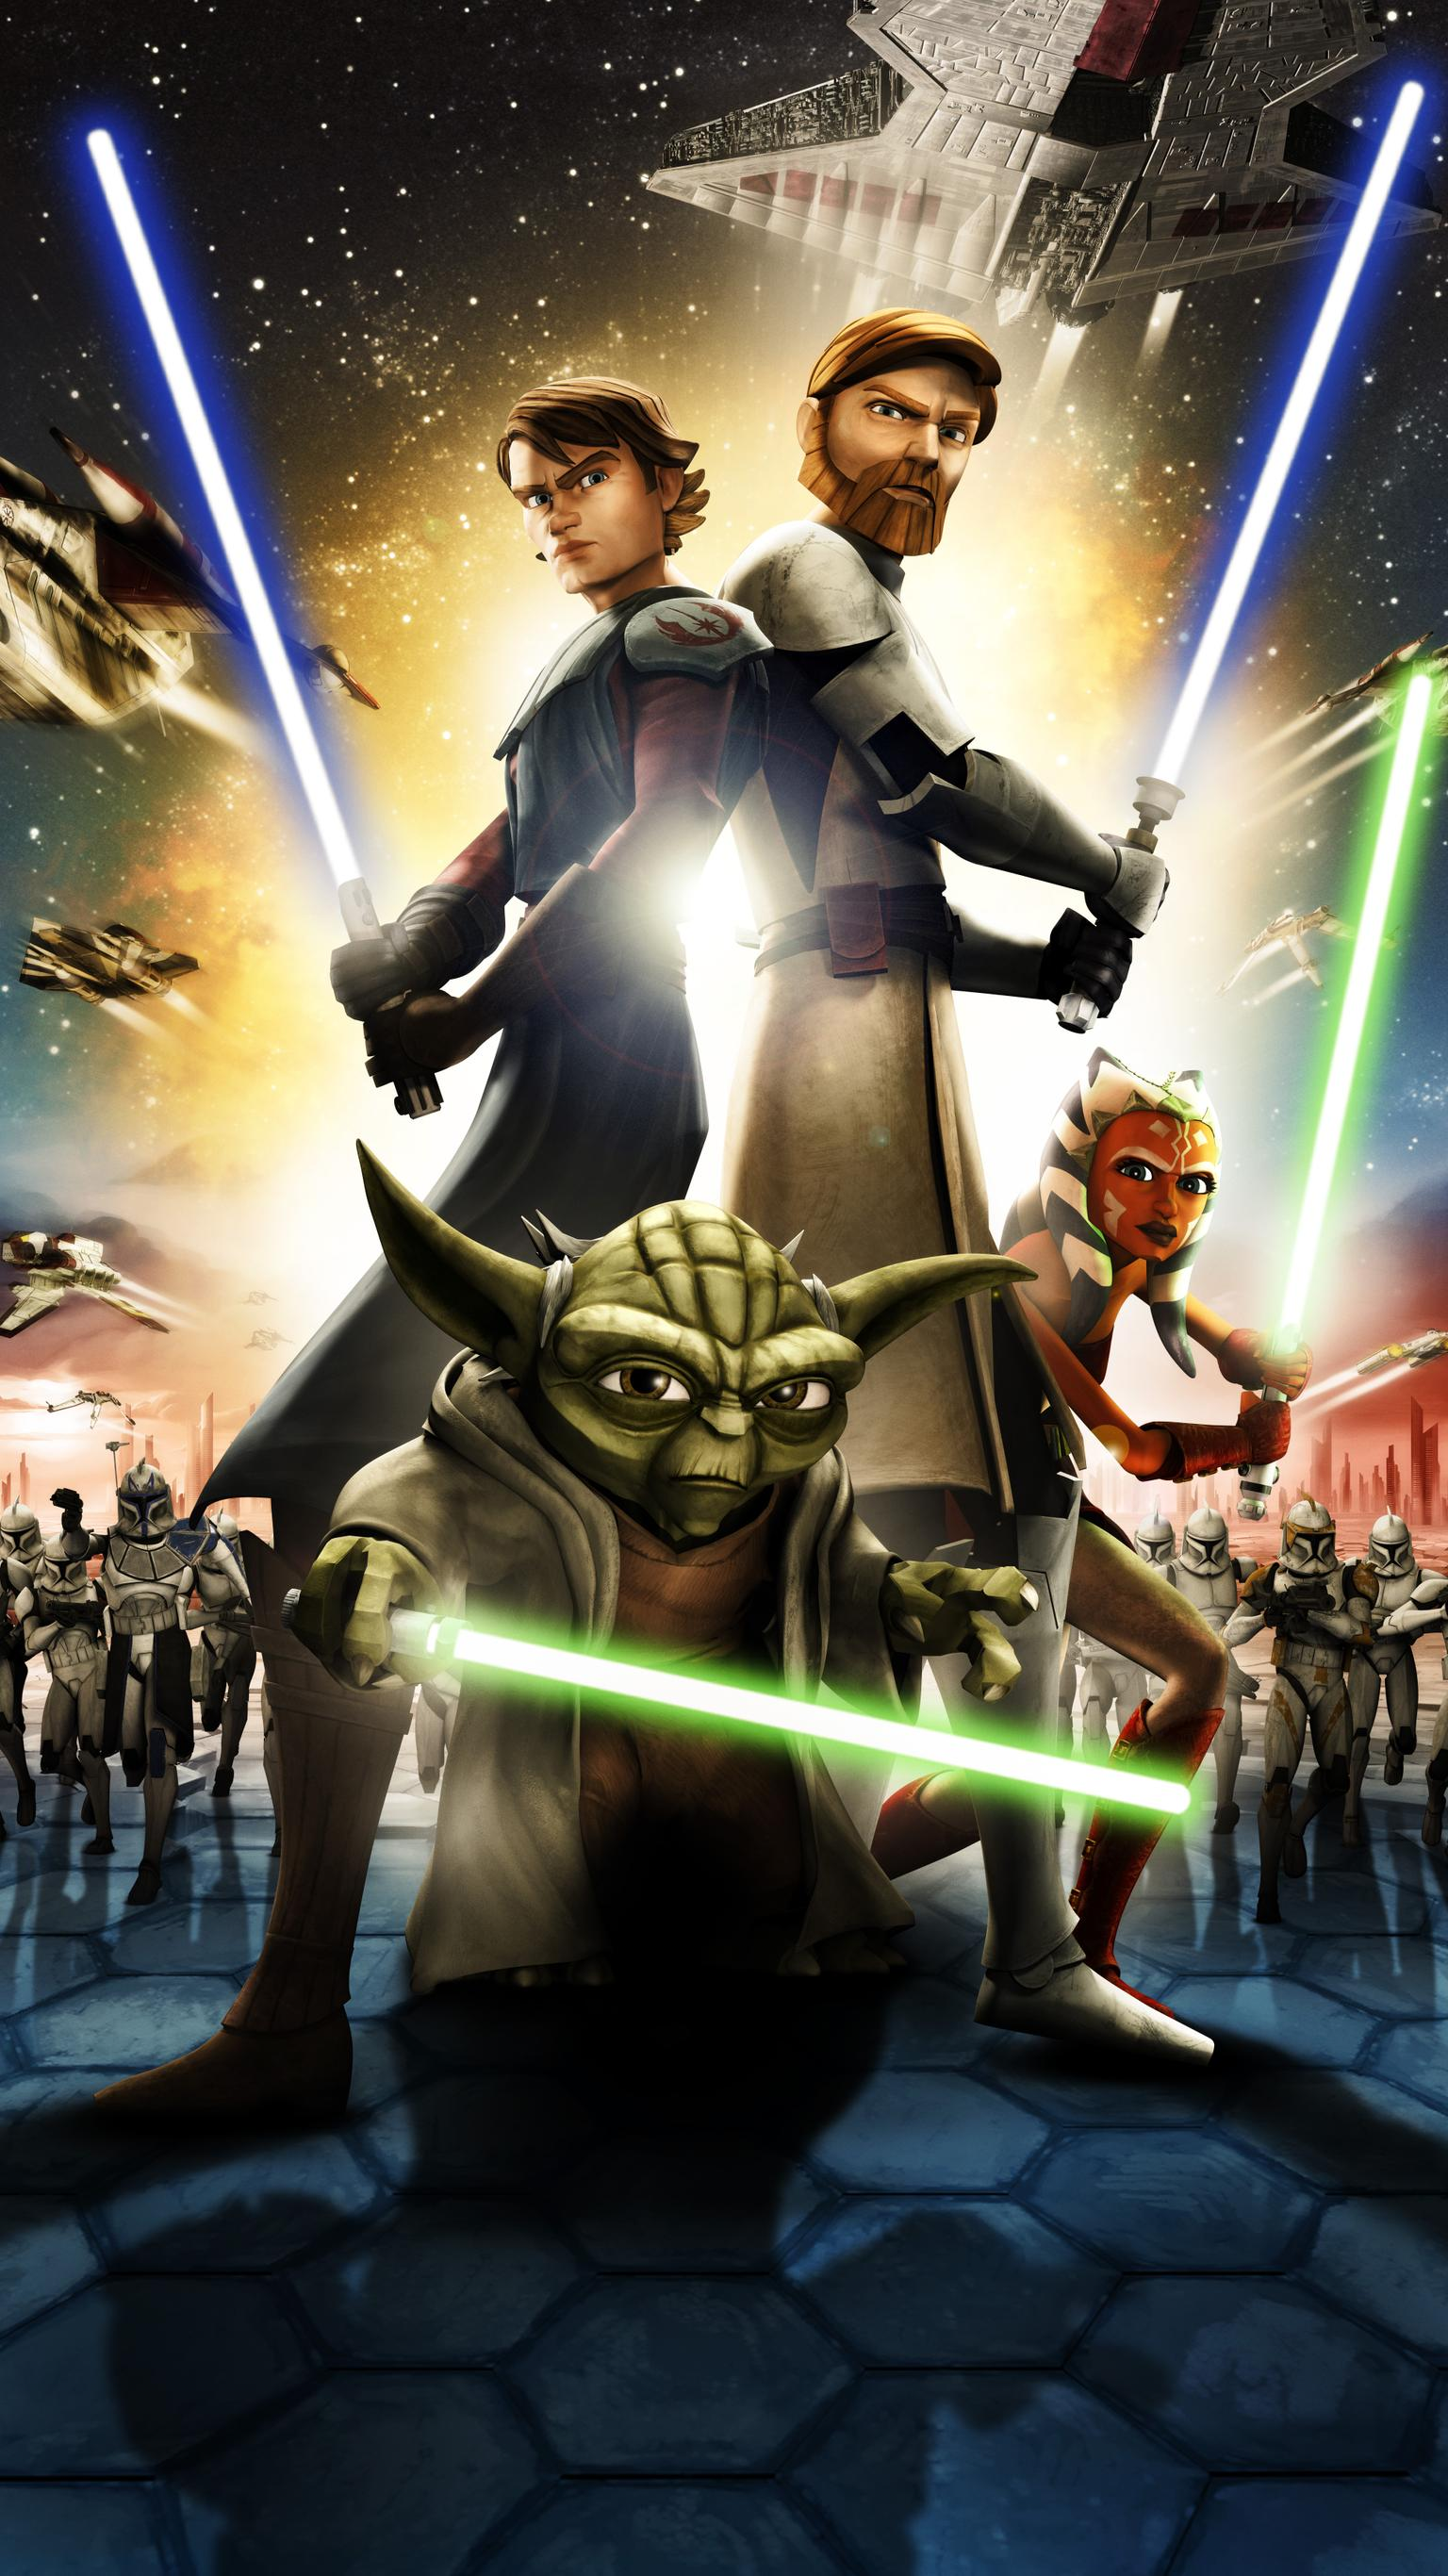 Iphone Star Wars Clone Wars Wallpaper